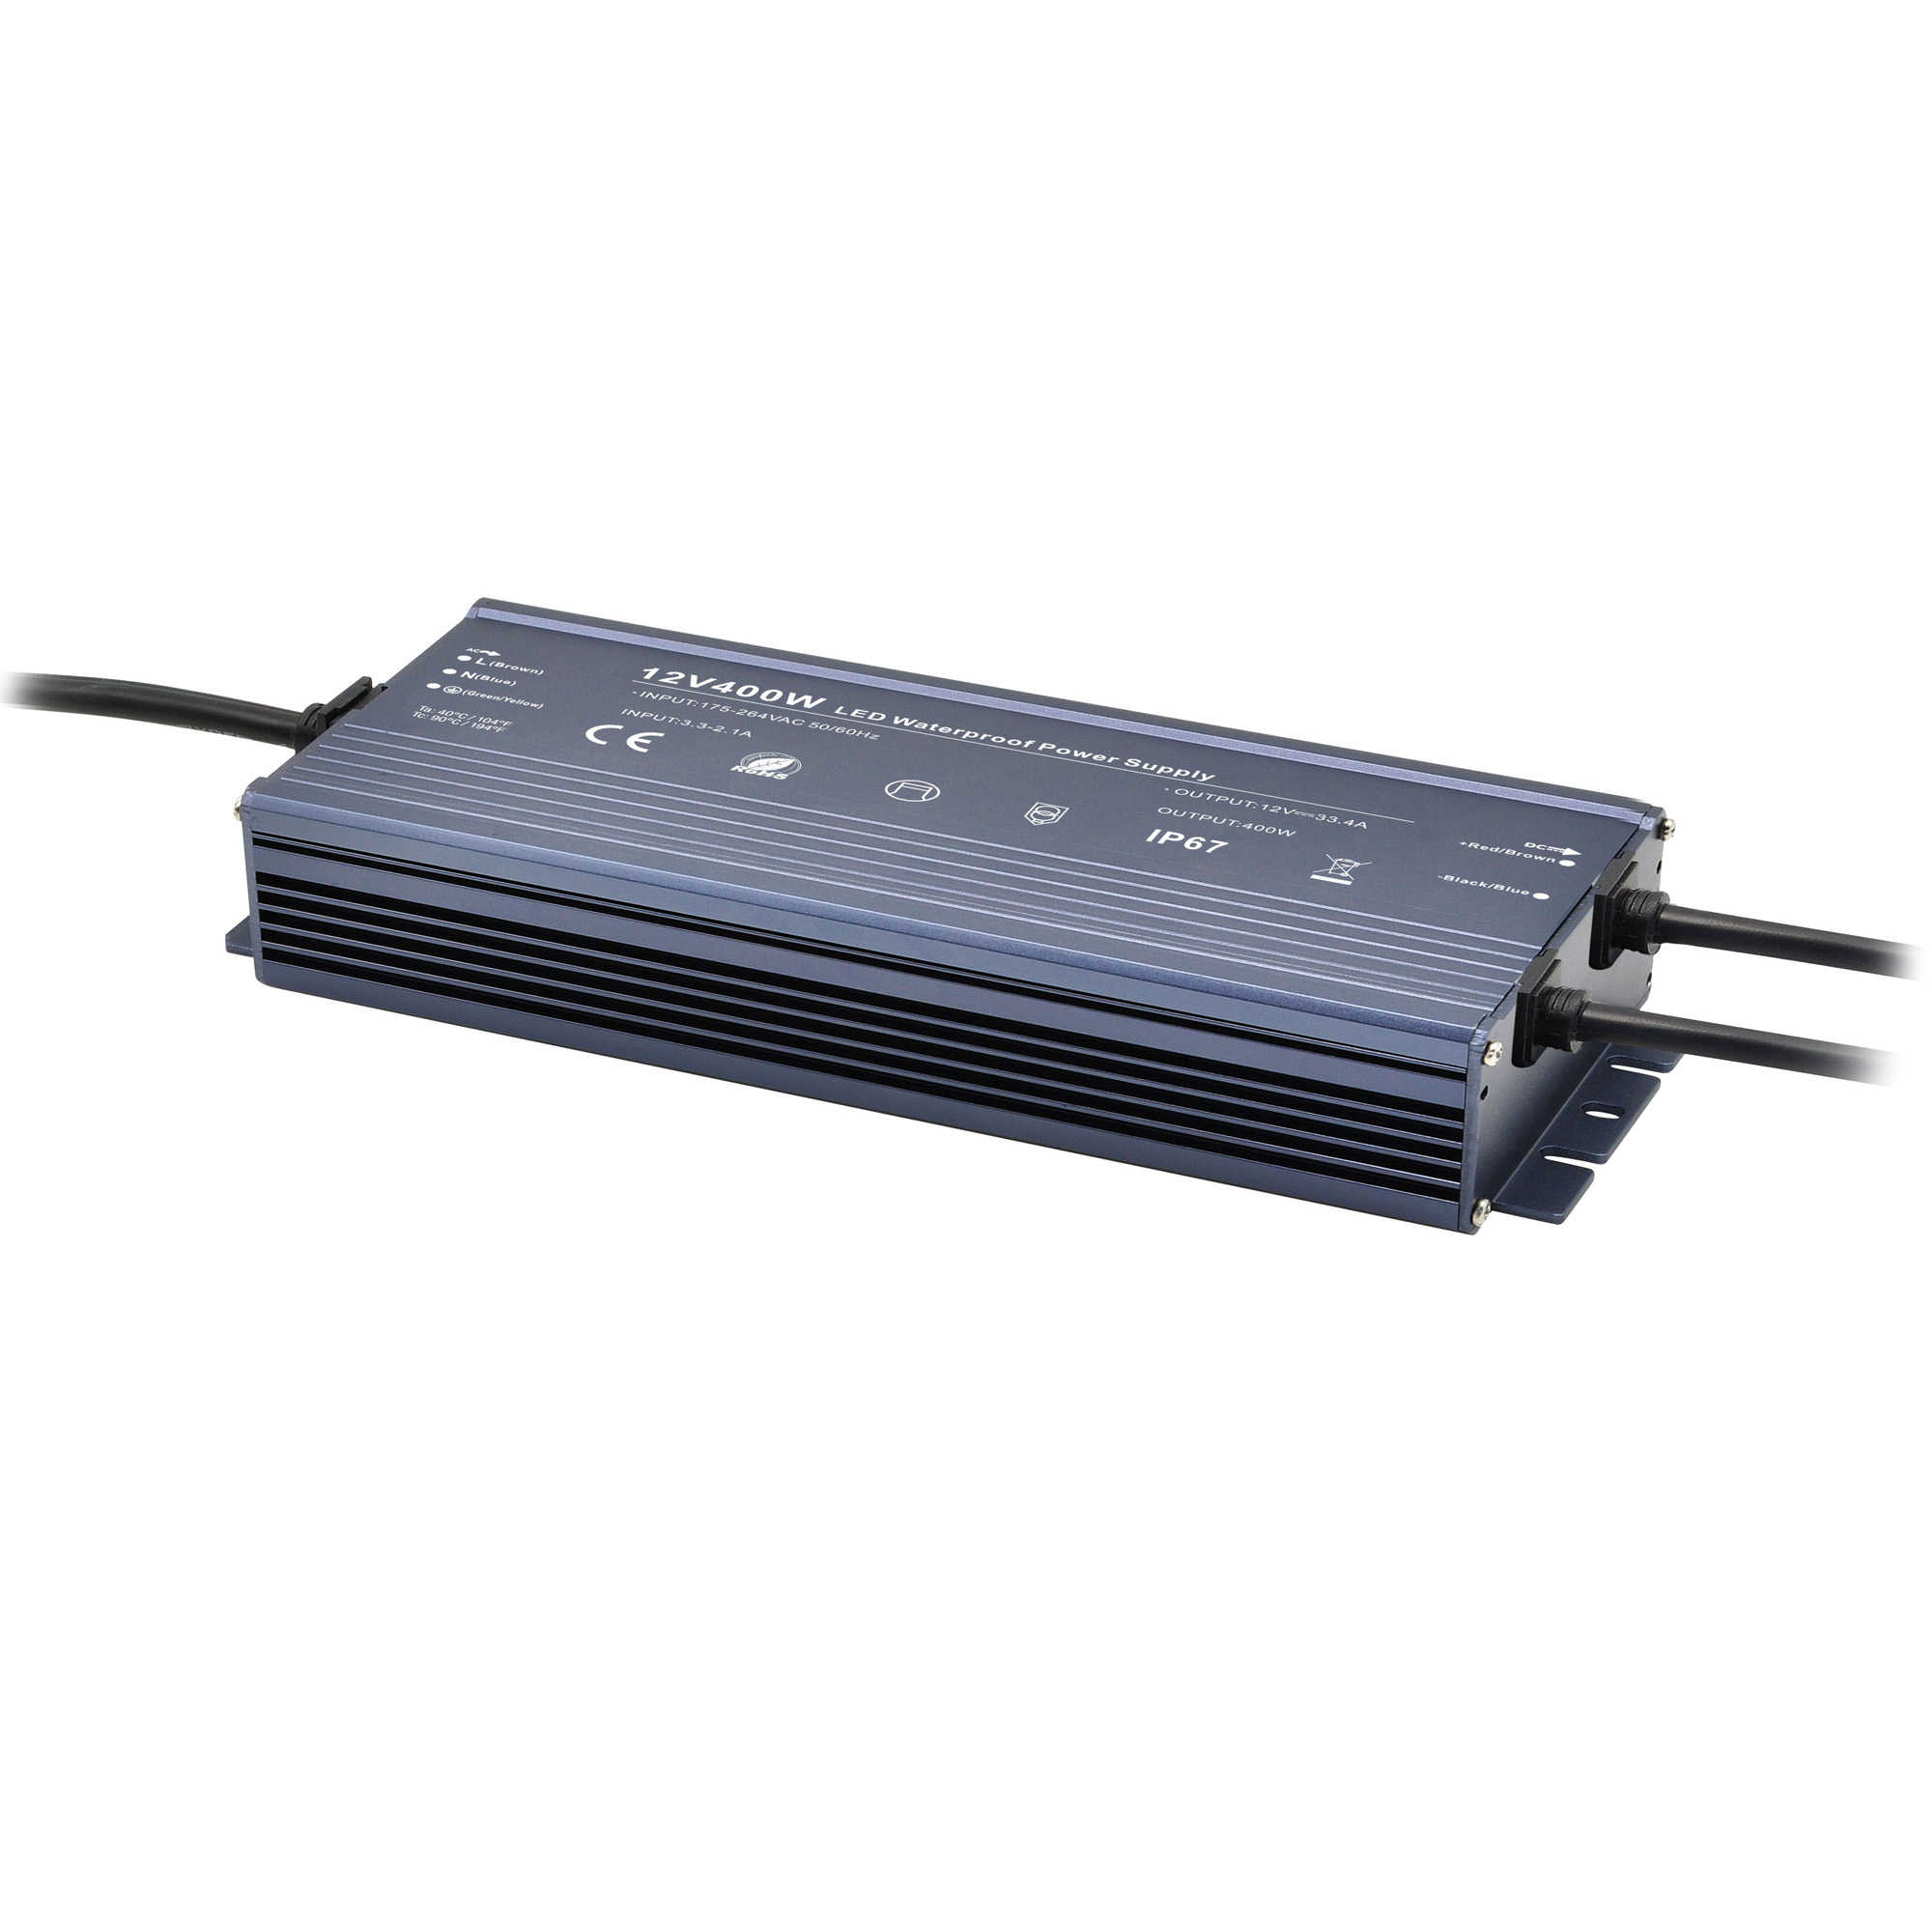 waterproof led power supply 12v 500W 400W 300w 200w ip67 led driver for outdoor led lighting